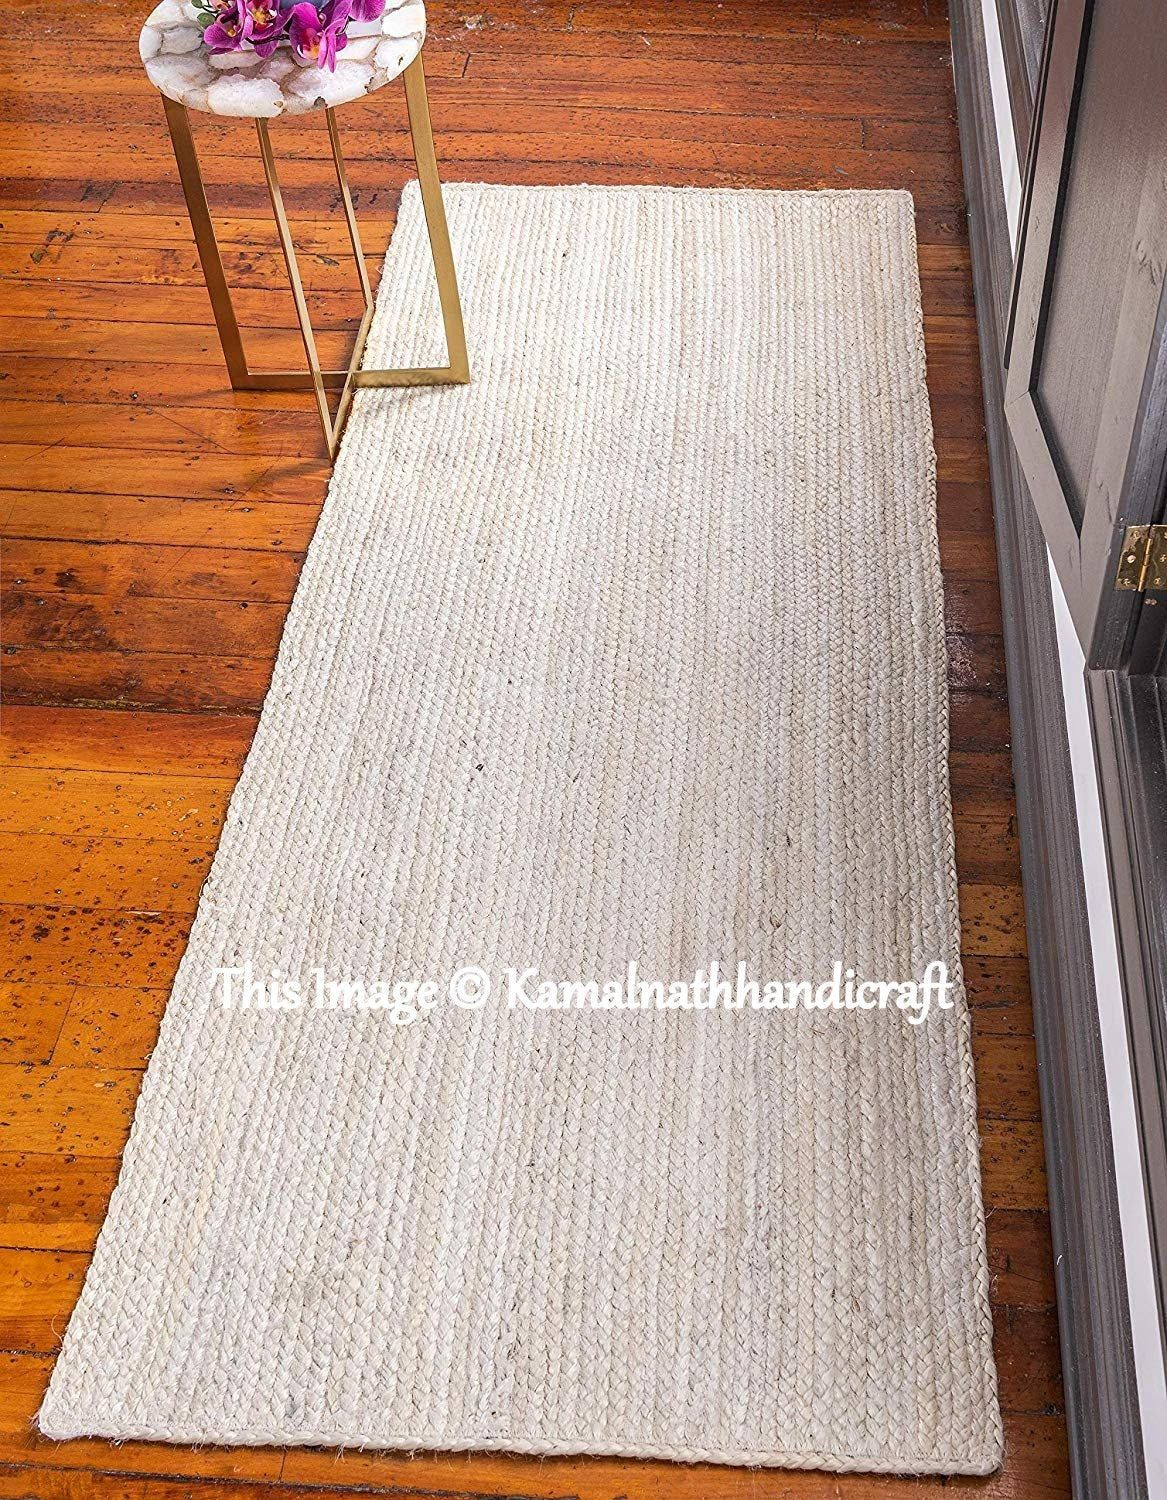 Natural Rugs Floor Decor Rugs Indian Braided Jute Rug Rag Hand Woven Natural Jute area Rugs for Home Decor Rugs Living Area Decorative